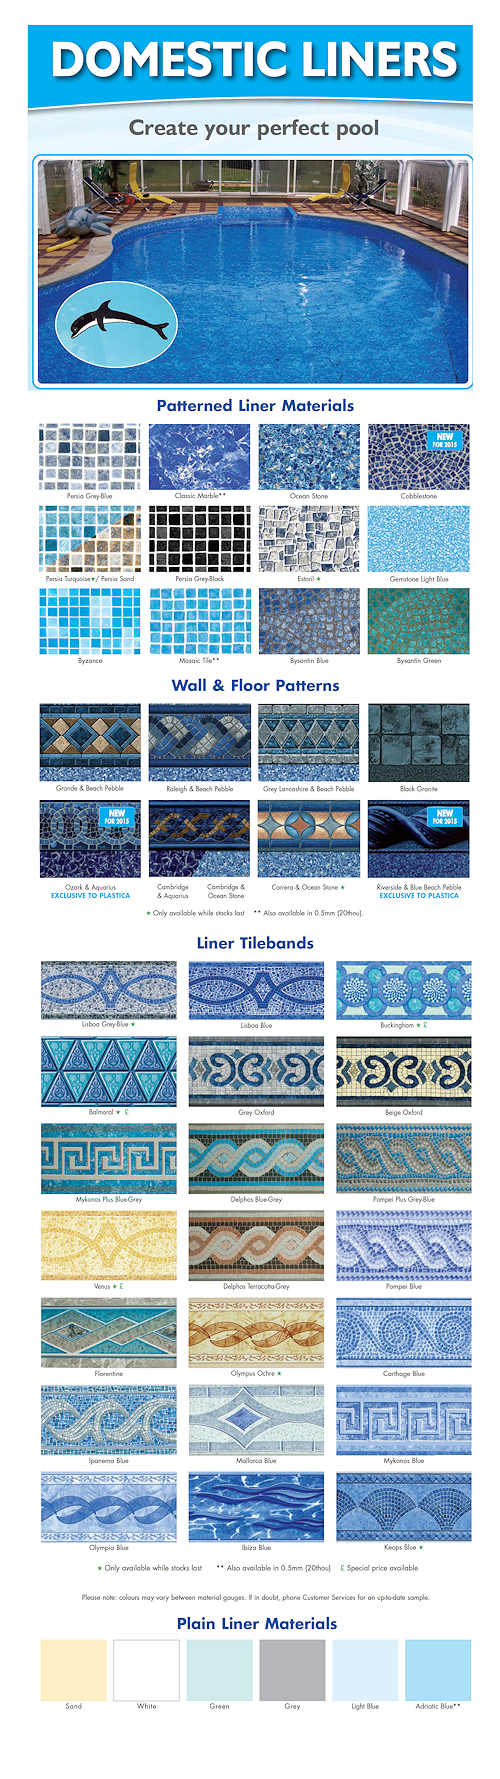 Patterned Liner Materials and Tilebands